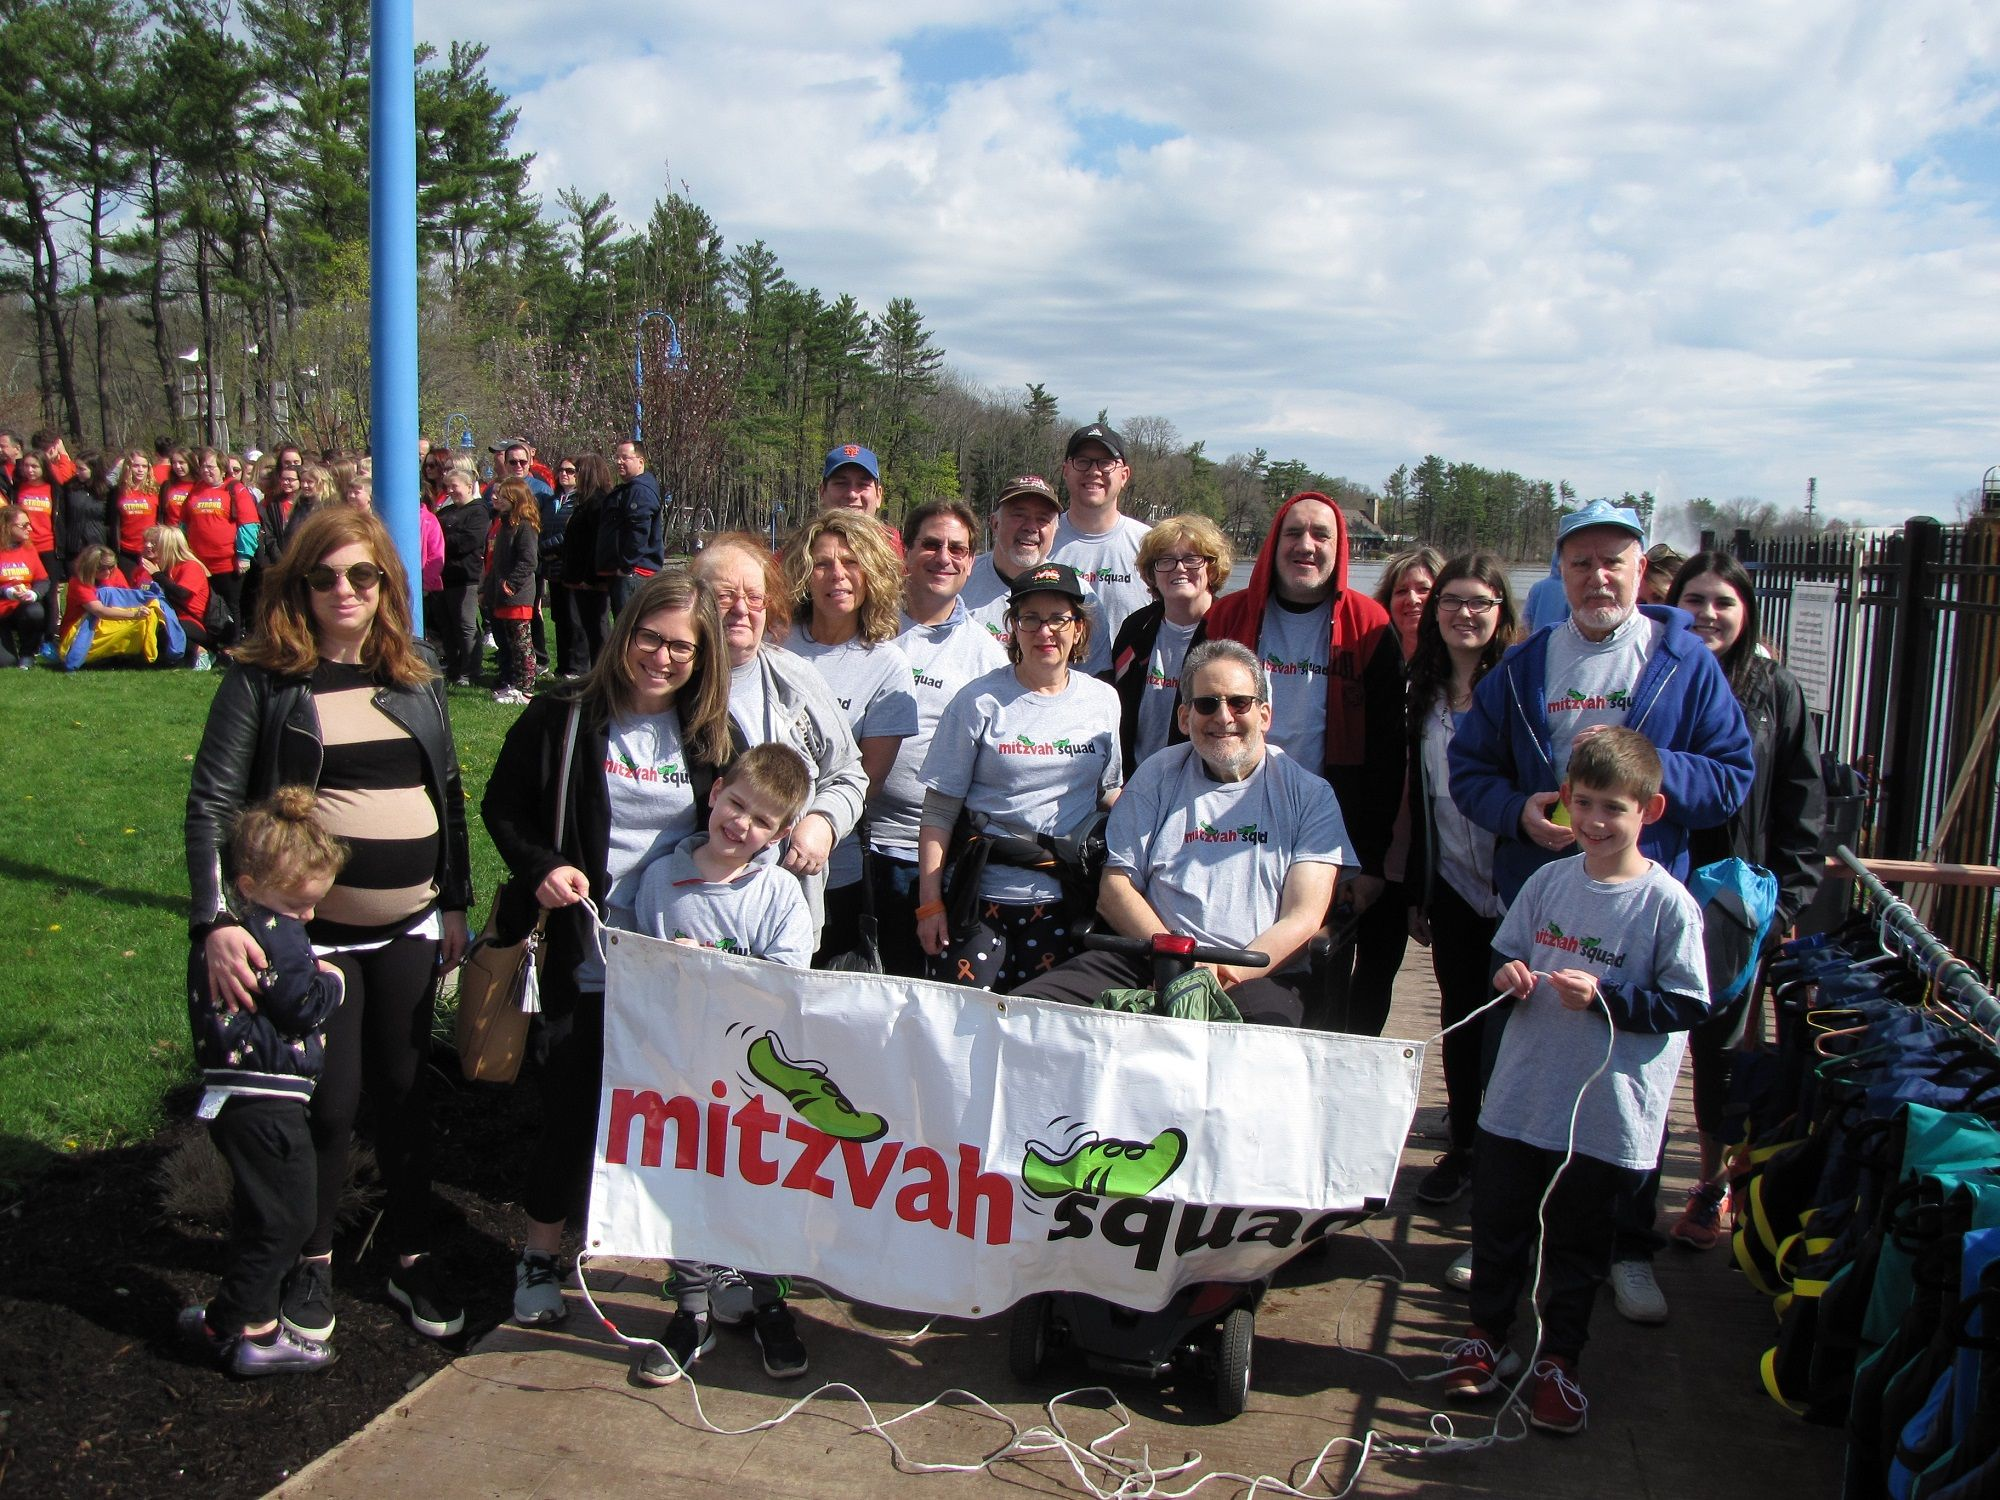 Walk MS Team (Mitzvah Squad) led by HPE employee, Laura Cohen